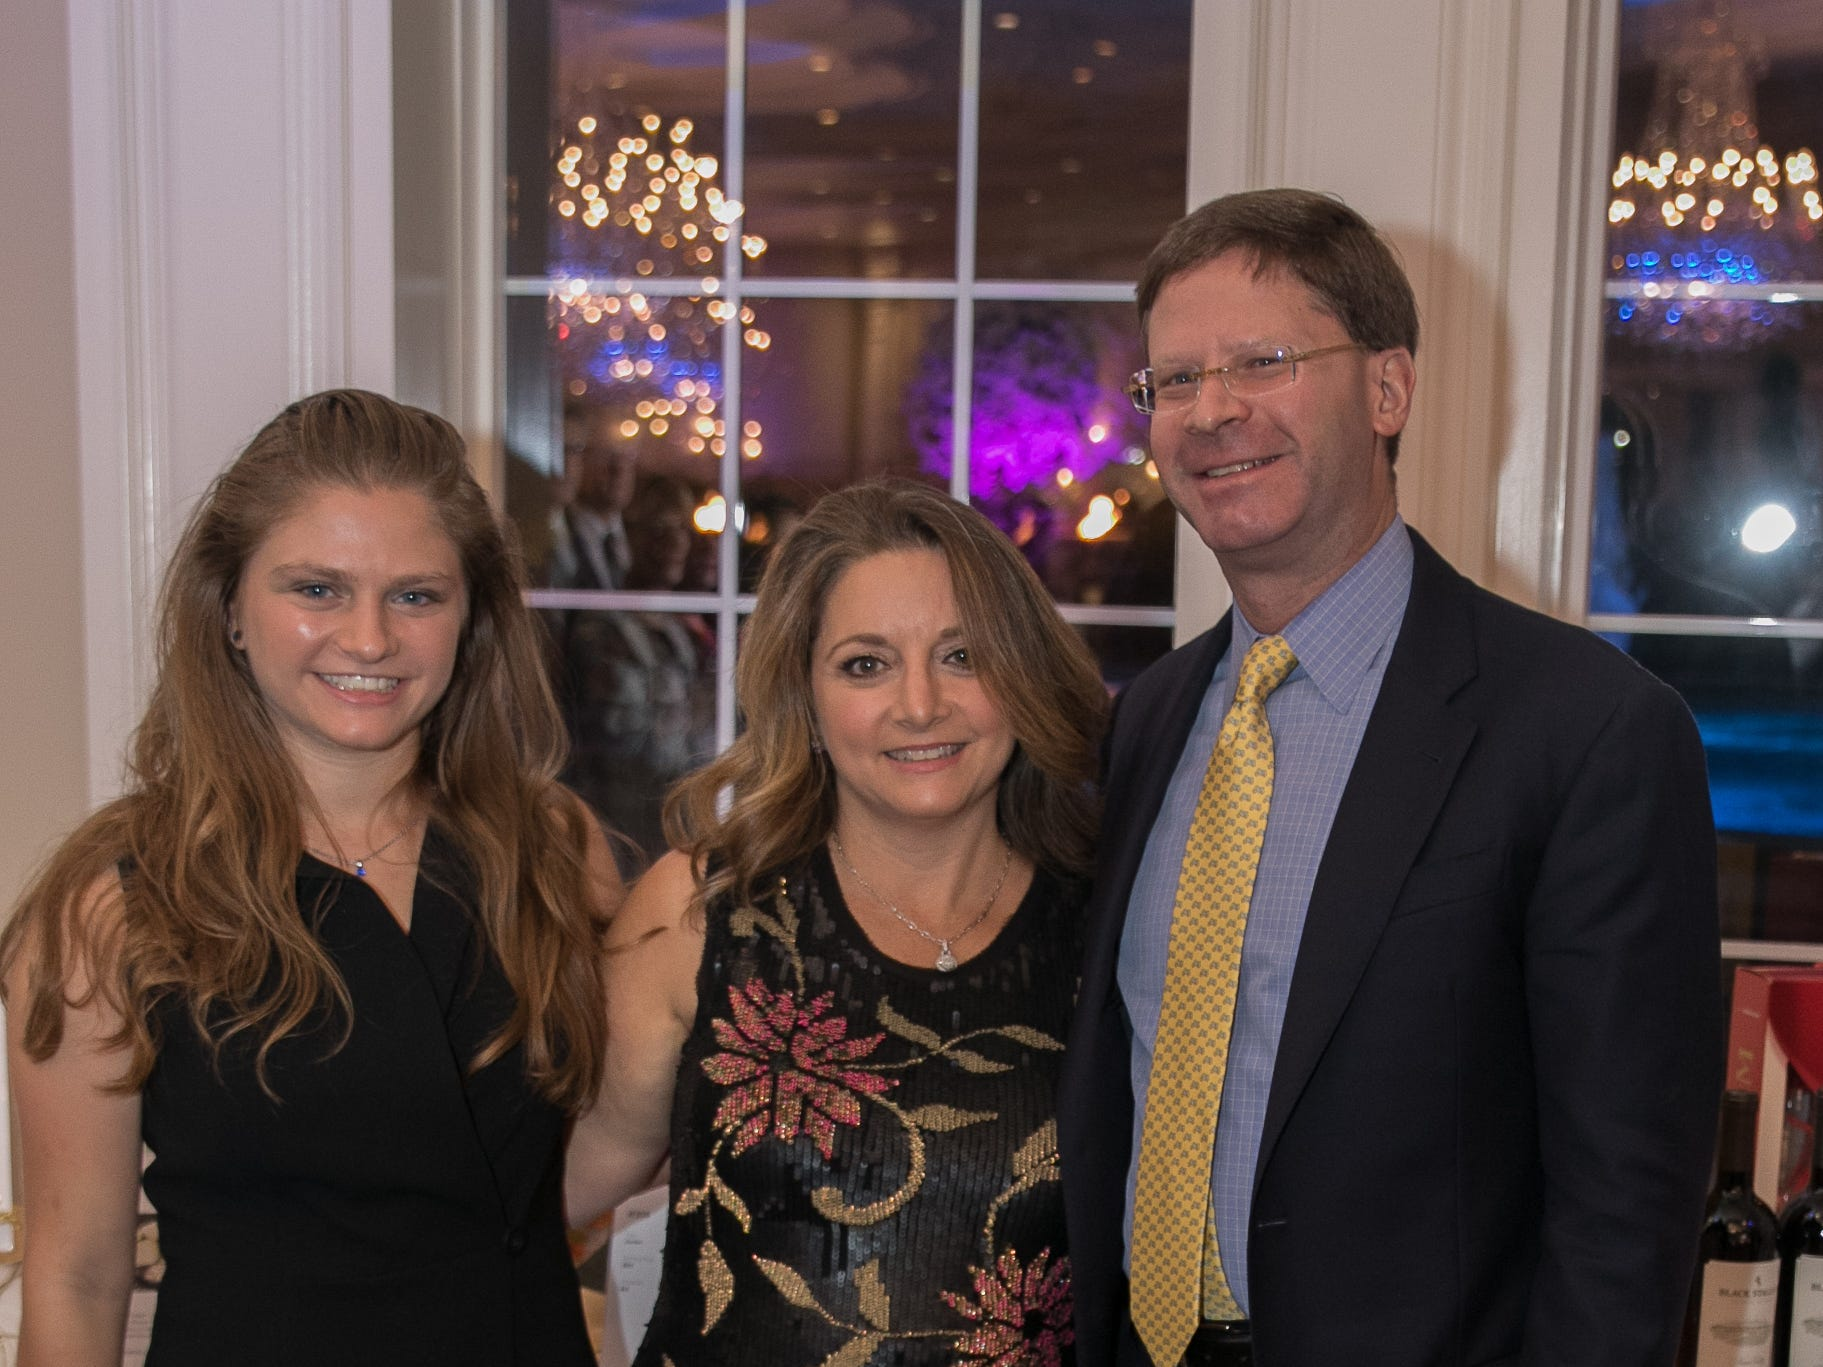 Honoree Gloria Nelson with her daughter Alexandra and husband Edward. Bergen Family Center celebrated 120 years of service with dinner and a silent auction at Th e Rockleigh Country Club.11/1/2018